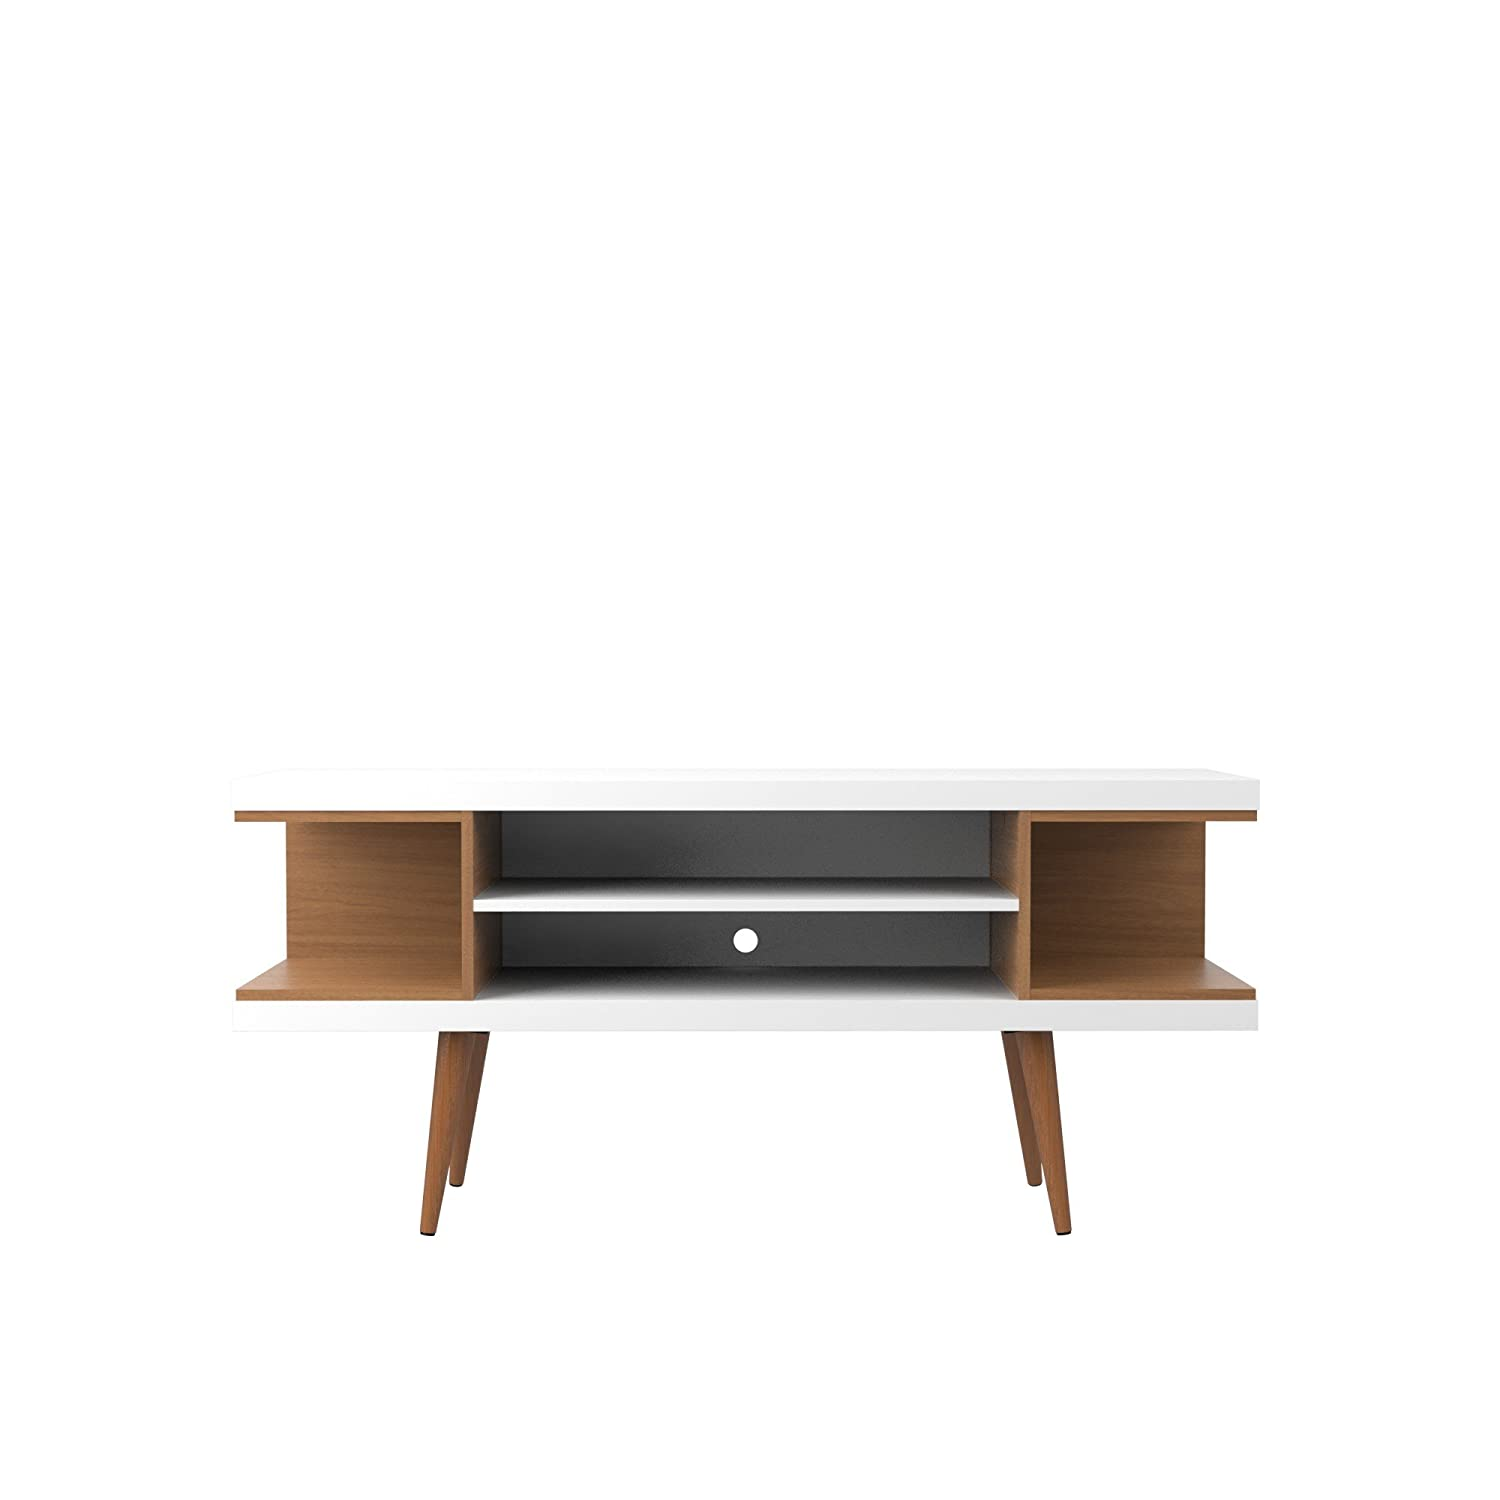 Manhattan Comfort Utopia Collection Mid Century Modern TV Stand With Open 3 Open Shelves and Two Open Cubbies, White Wood